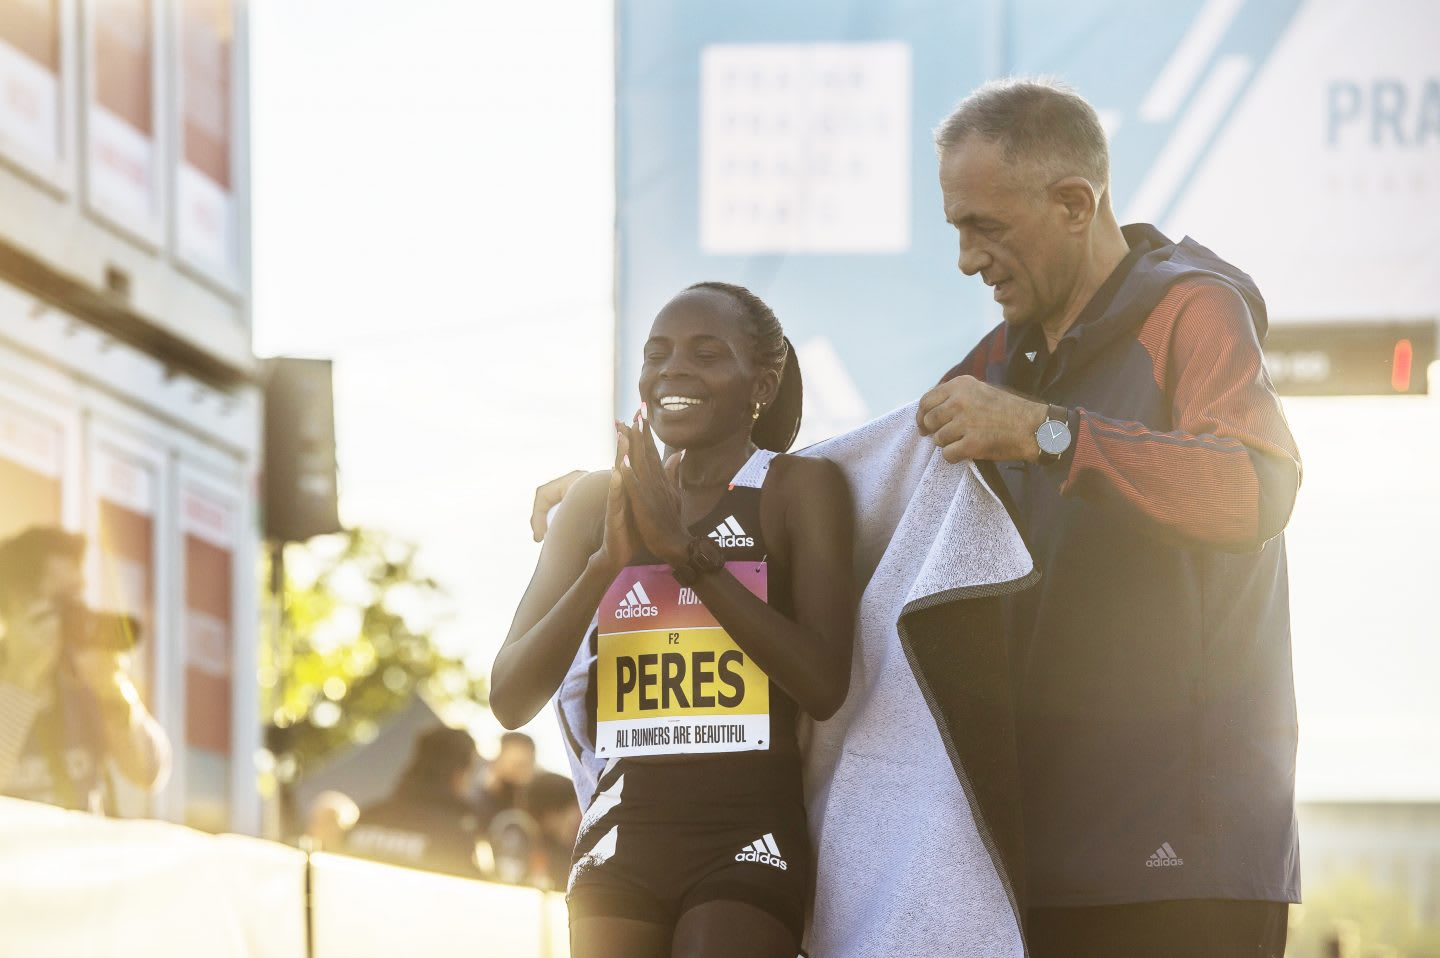 Kenyan long-distance runner Peres Jepchirchir finishing the Prague half marathon and breaking a World Record for the fastest female half marathon, adidas, athlete, runner, sports